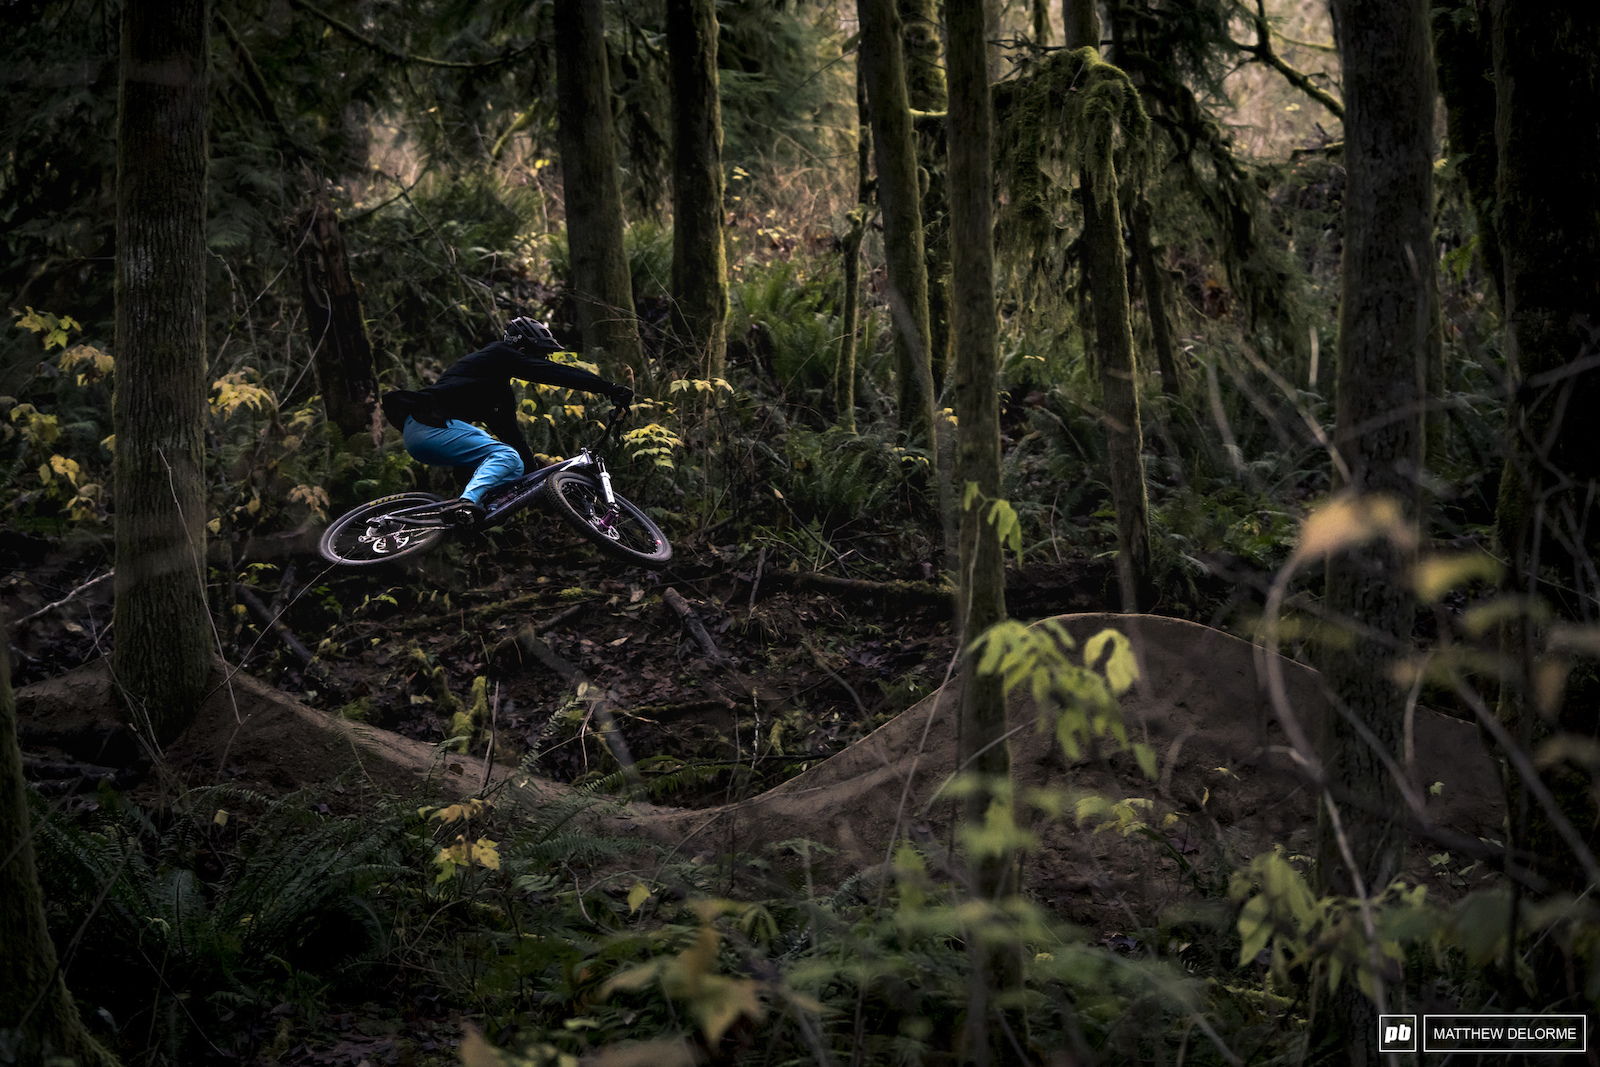 The Fall colors are fading and winter is coming but that doesn t mean riding season is over here int he PNW.